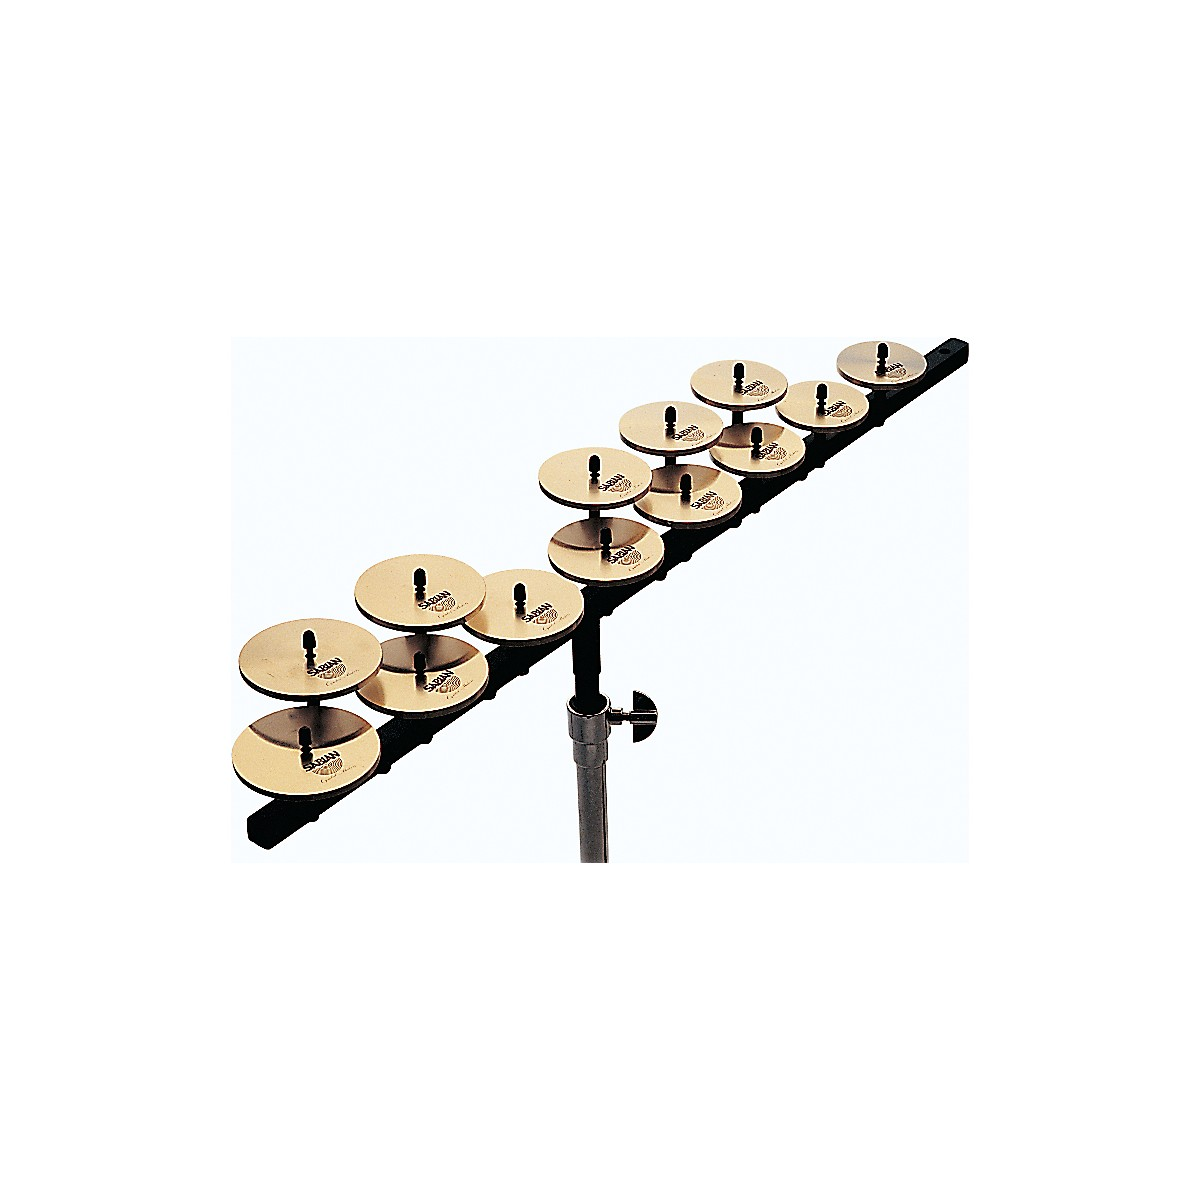 Sabian Crotales with Bar